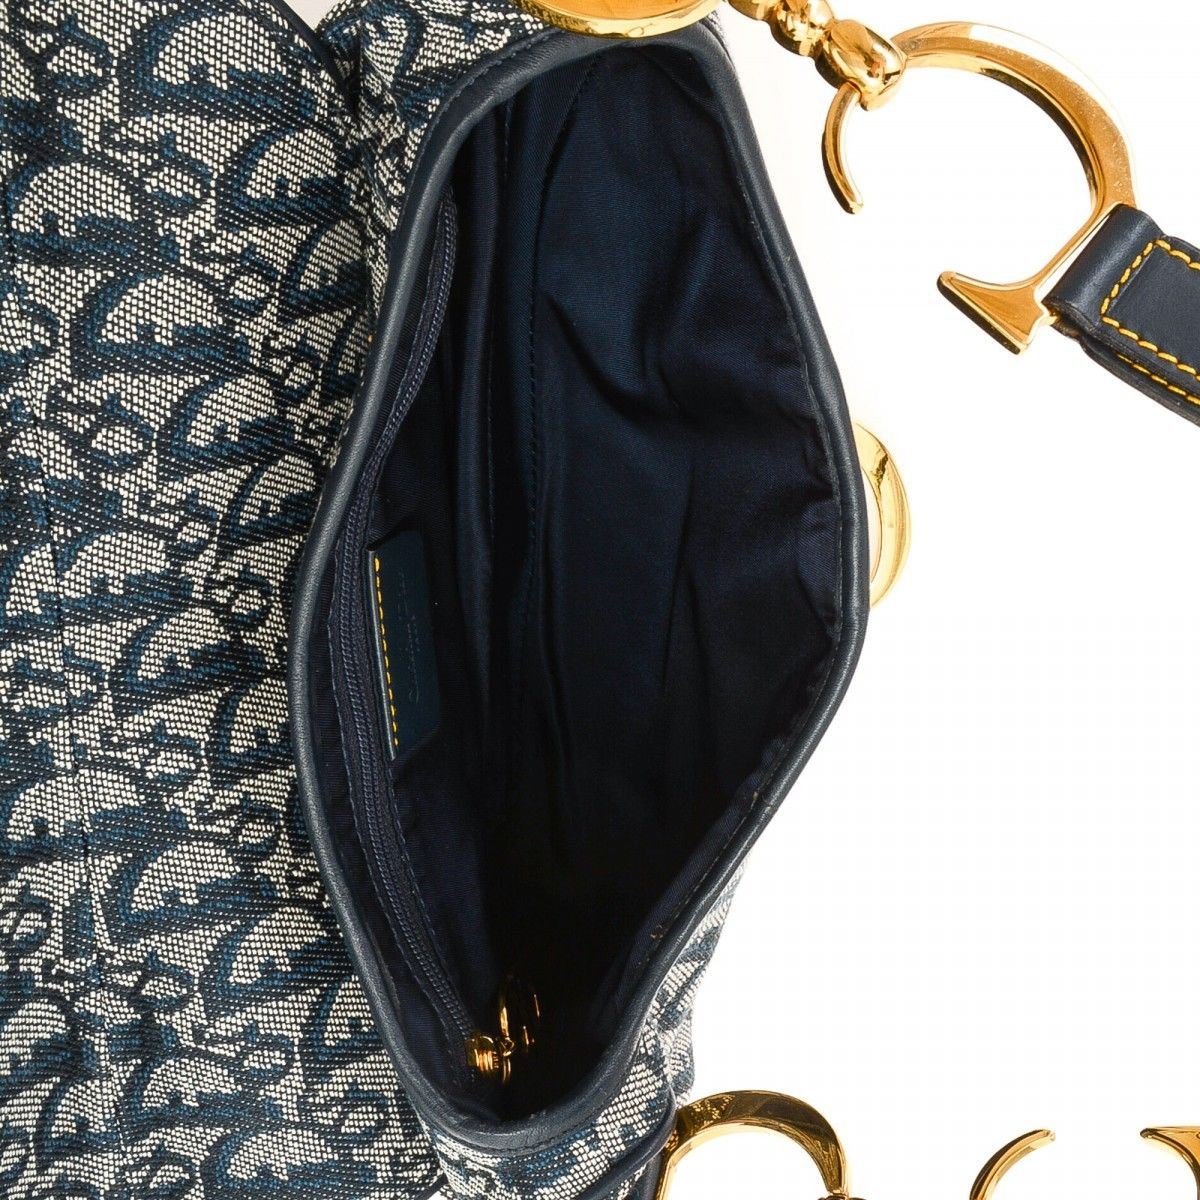 Dior Saddle Bag. LXRandCo guarantees this is an authentic vintage Dior  Saddle Bag handbag. This chic pocketbook in beautiful navy is made ... a1e743c7eb